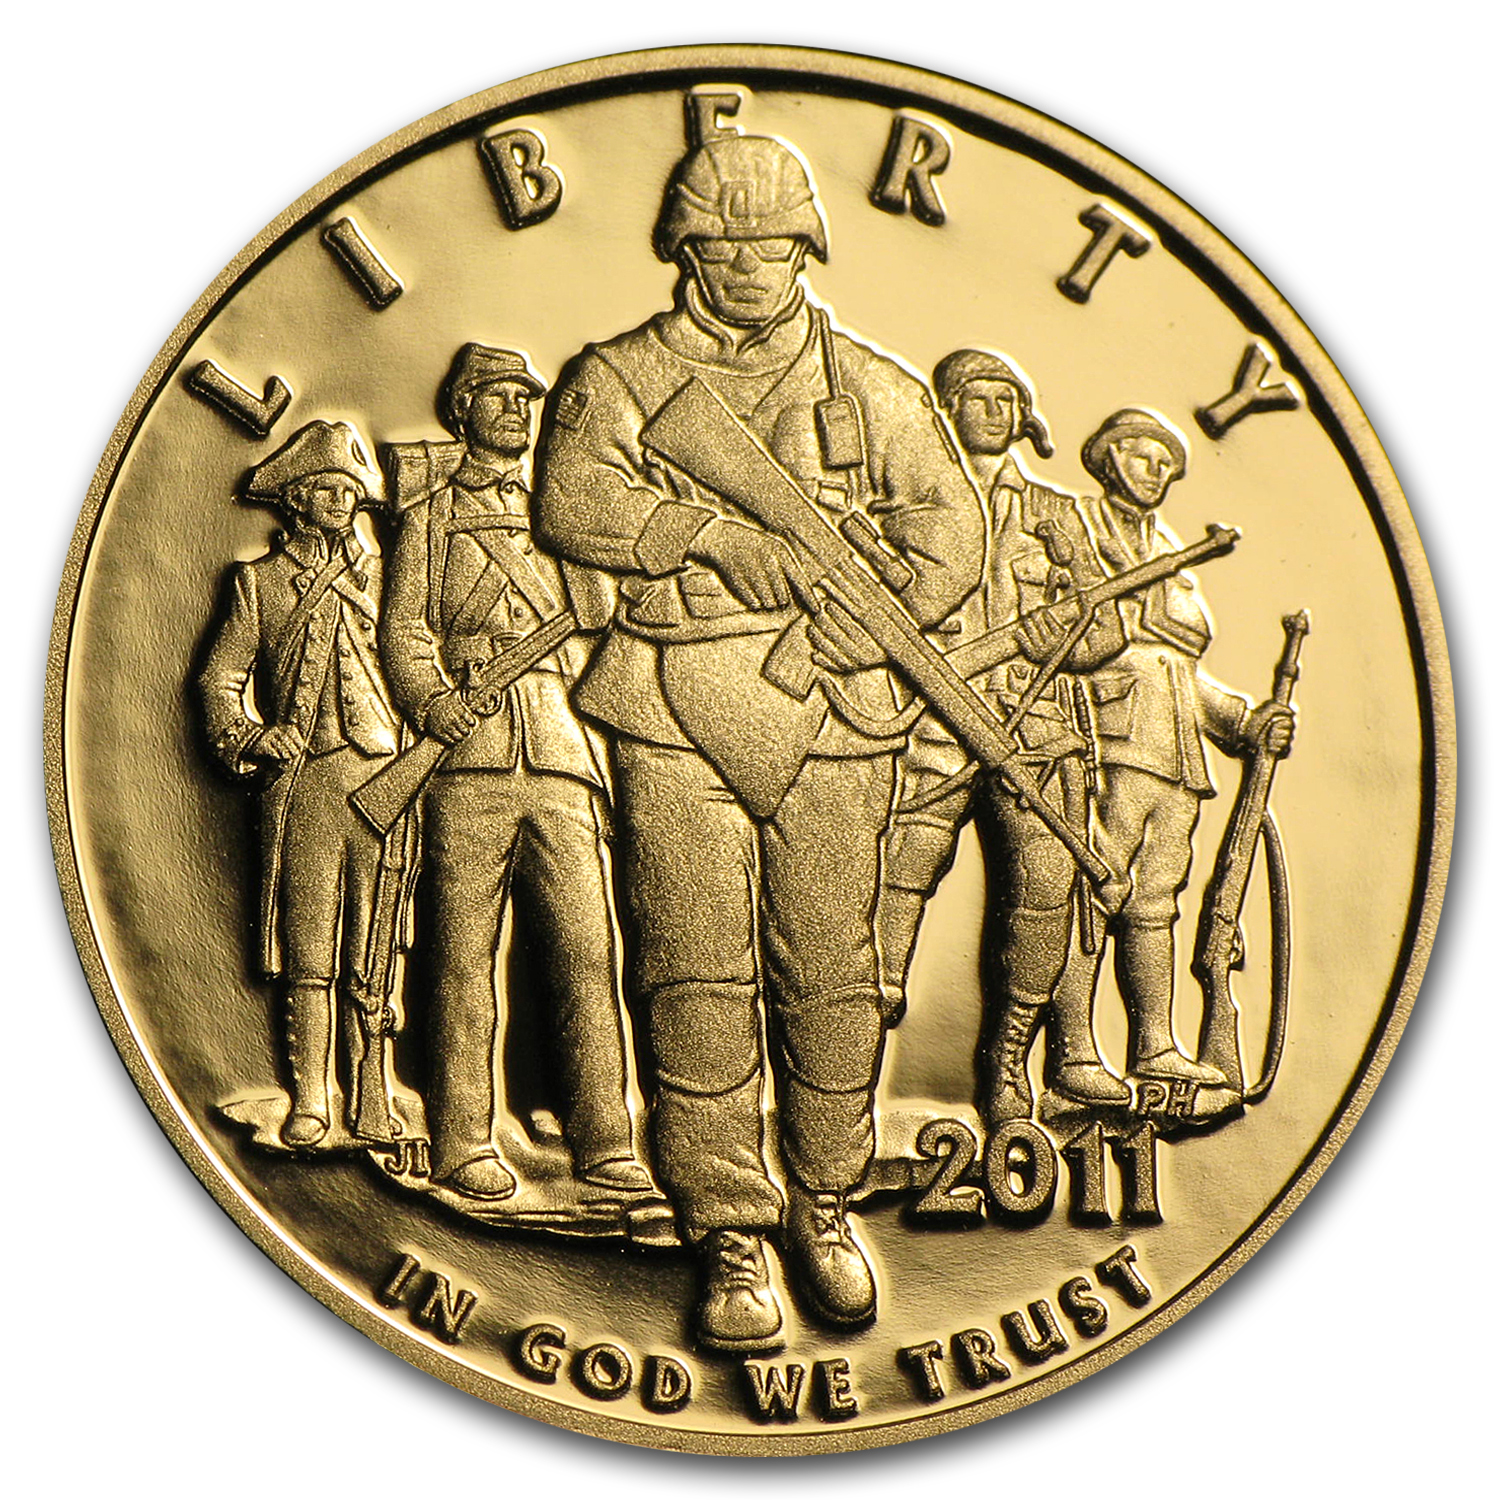 2011-P Gold $5 Commemorative Army Proof